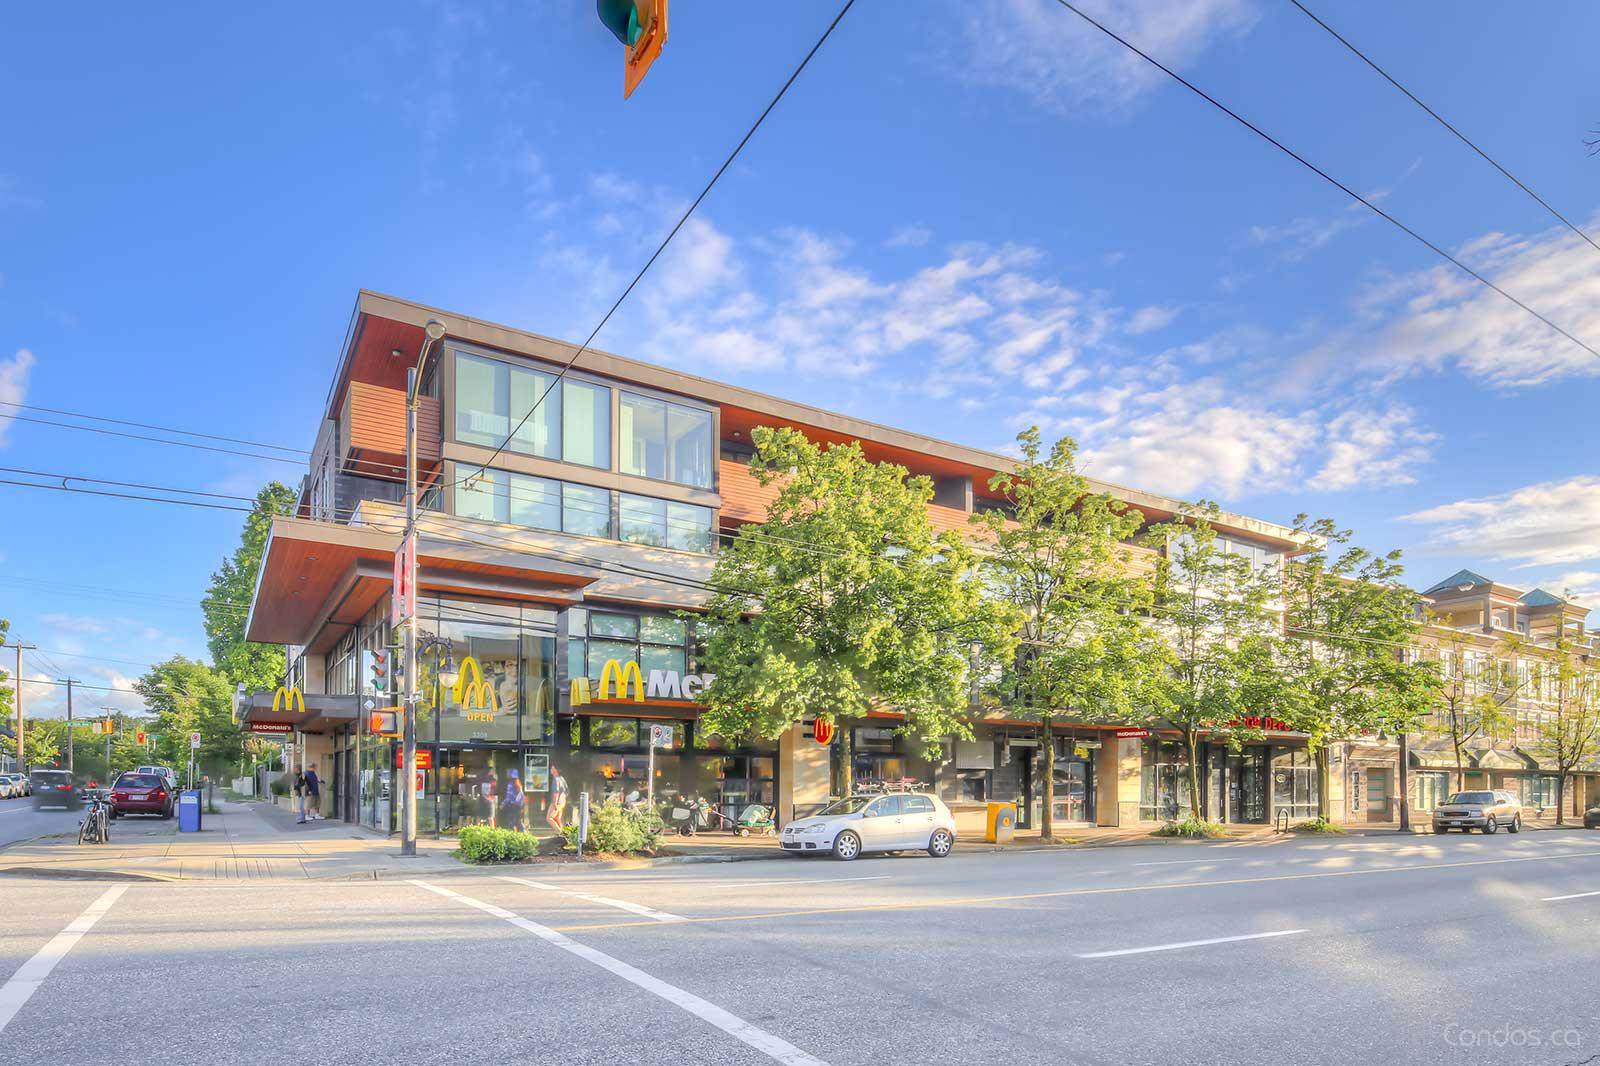 The Mack at 2525 Blenheim St, Vancouver 0